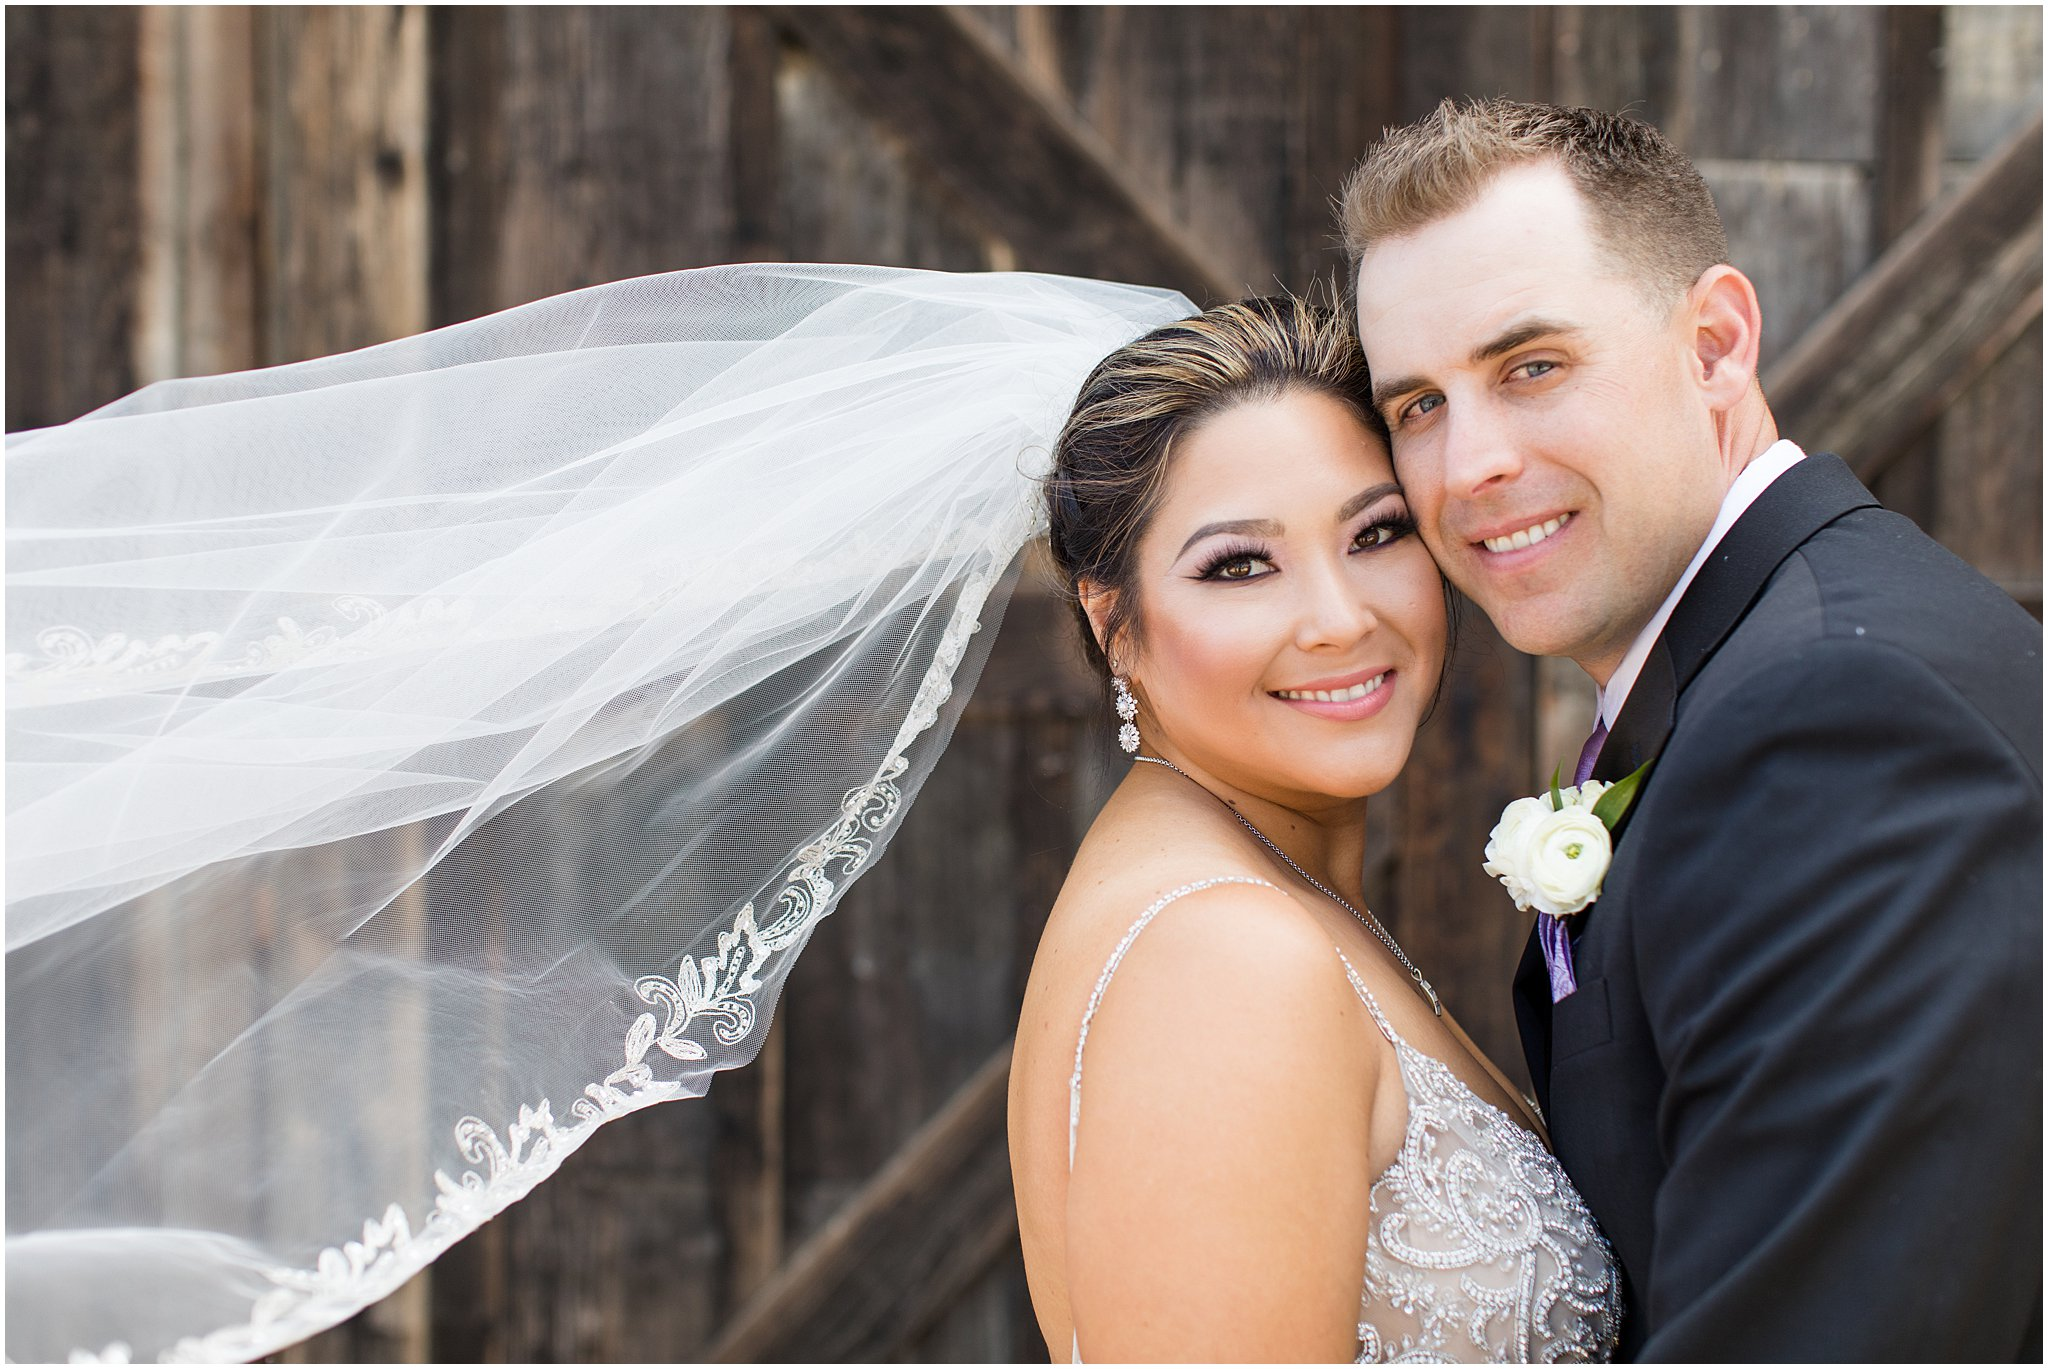 2019 wedding san juan bautista hacienda de leal vineyards bay area wedding photographer_0024.jpg